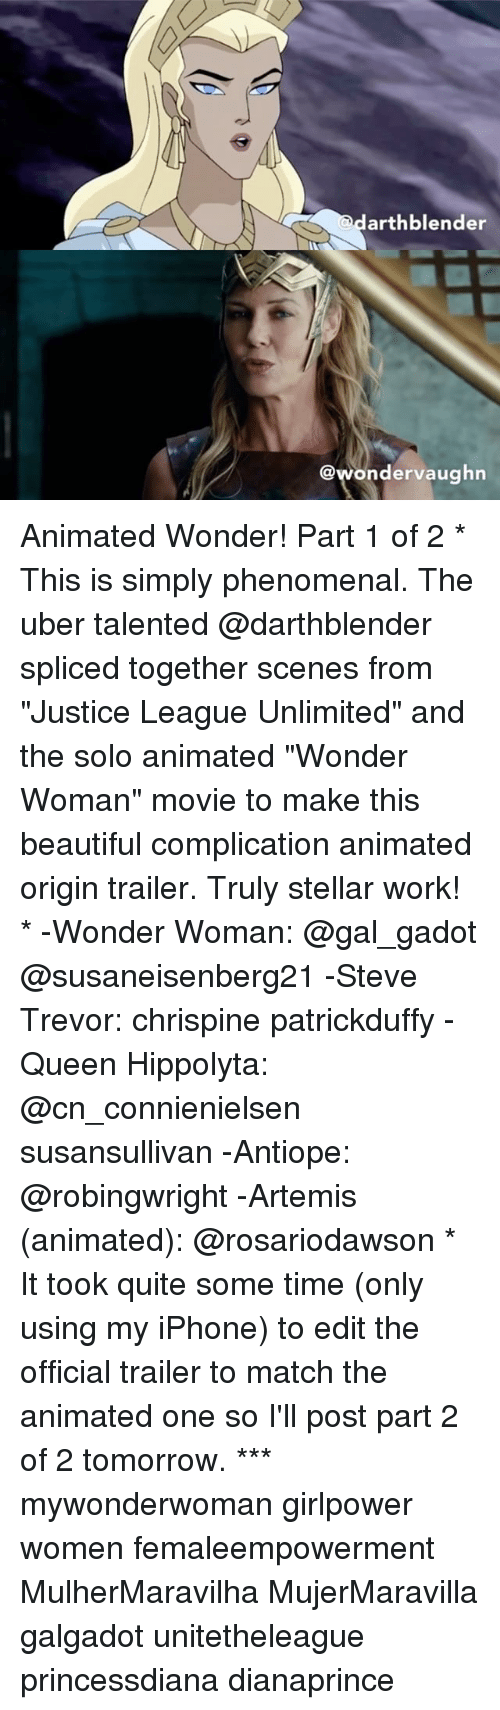 """Beautiful, Iphone, and Memes: arthblender  @wondervaughn Animated Wonder! Part 1 of 2 * This is simply phenomenal. The uber talented @darthblender spliced together scenes from """"Justice League Unlimited"""" and the solo animated """"Wonder Woman"""" movie to make this beautiful complication animated origin trailer. Truly stellar work! * -Wonder Woman: @gal_gadot @susaneisenberg21 -Steve Trevor: chrispine patrickduffy -Queen Hippolyta: @cn_connienielsen susansullivan -Antiope: @robingwright -Artemis (animated): @rosariodawson * It took quite some time (only using my iPhone) to edit the official trailer to match the animated one so I'll post part 2 of 2 tomorrow. *** mywonderwoman girlpower women femaleempowerment MulherMaravilha MujerMaravilla galgadot unitetheleague princessdiana dianaprince"""